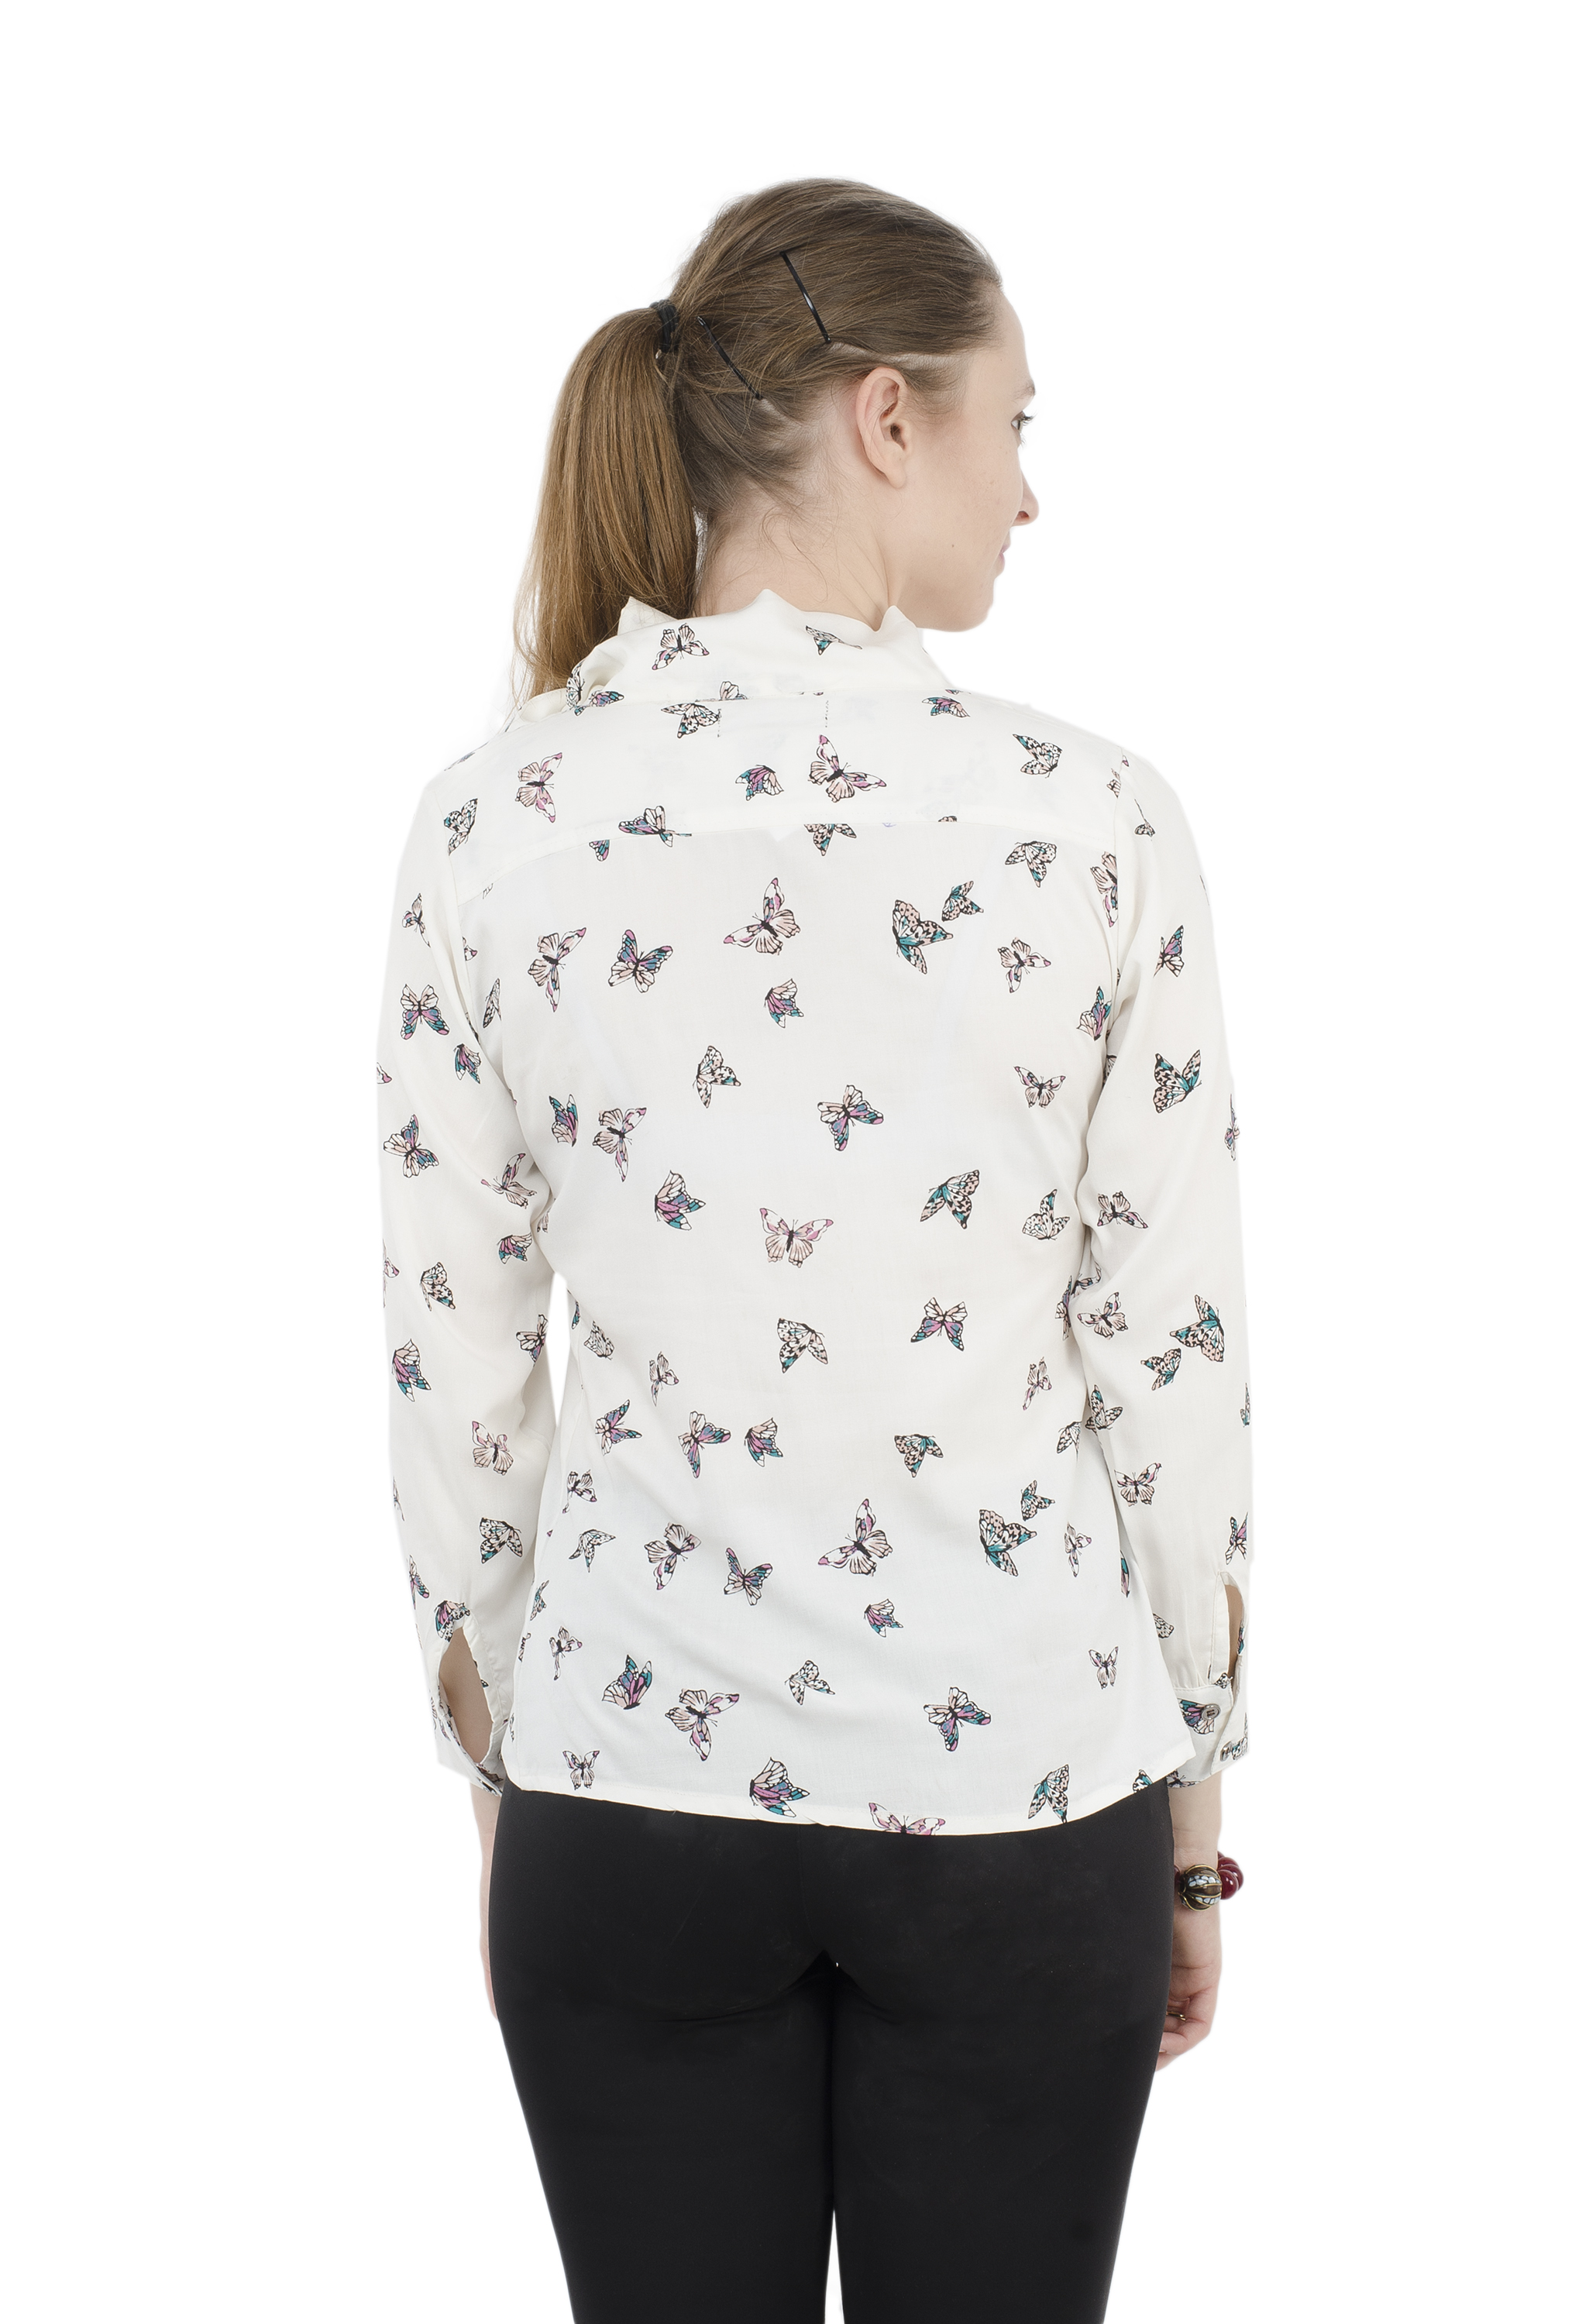 Butterfly blouse from Grab Your Garb